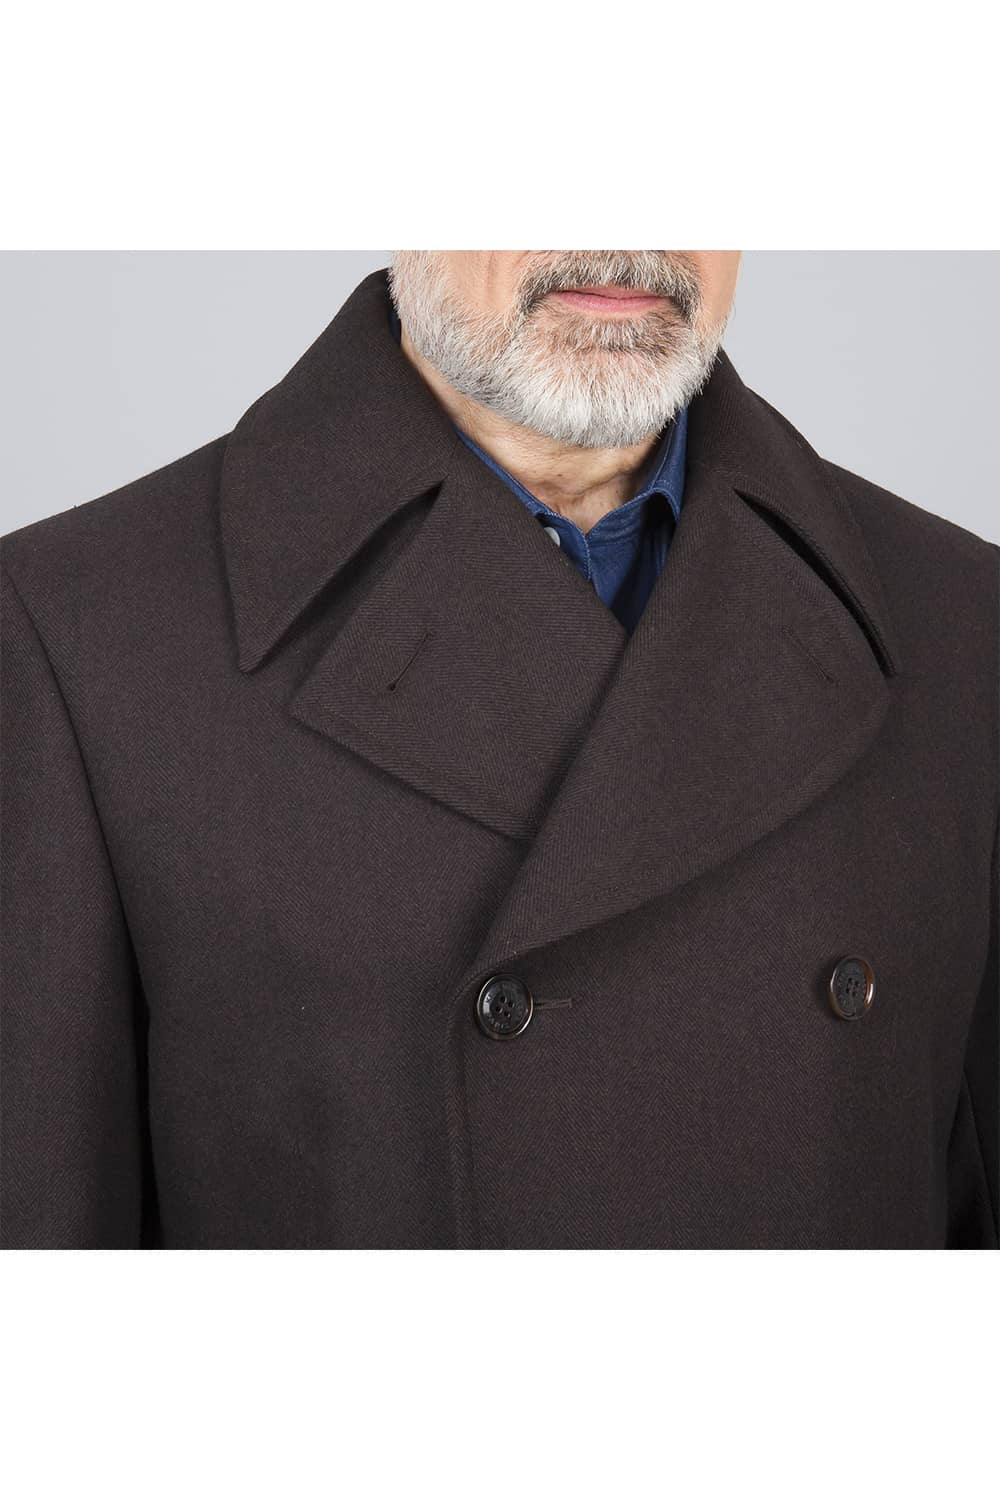 col manteau russe long